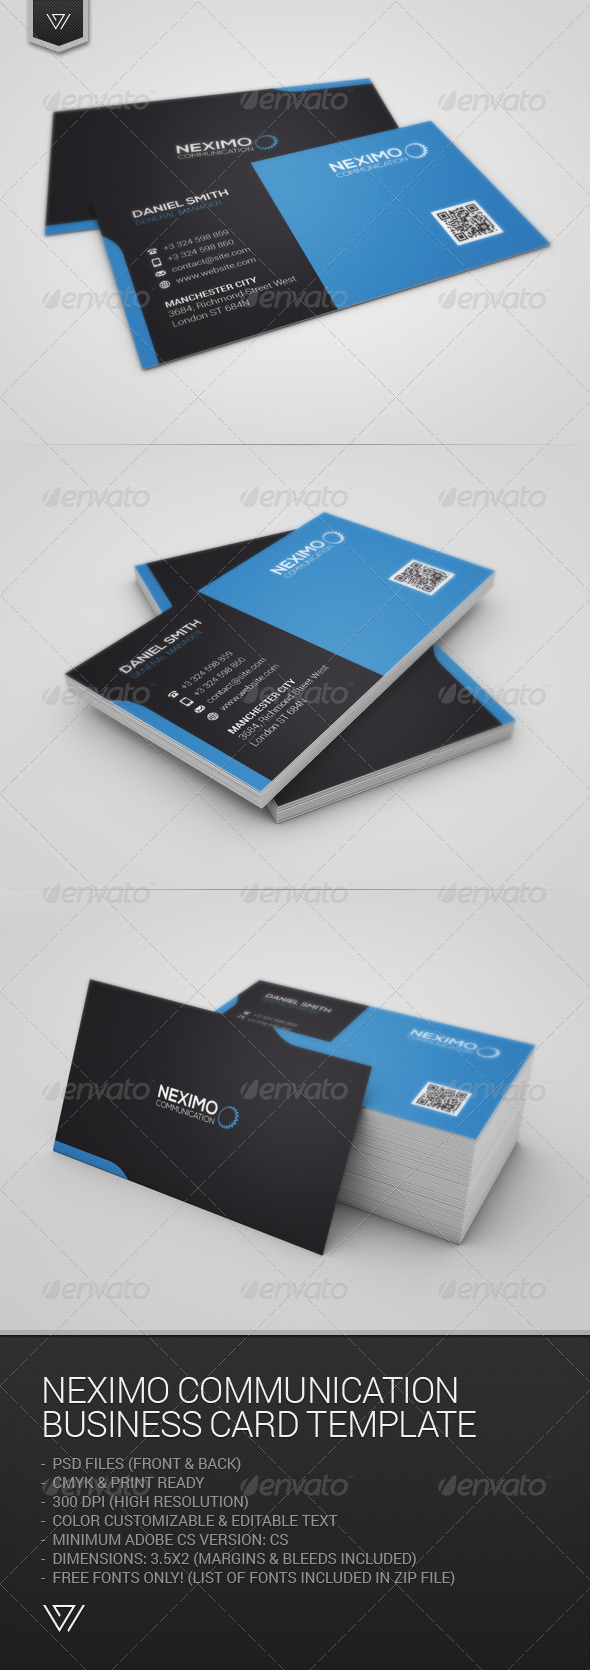 GraphicRiver Neximo Communication Business Card 7712776